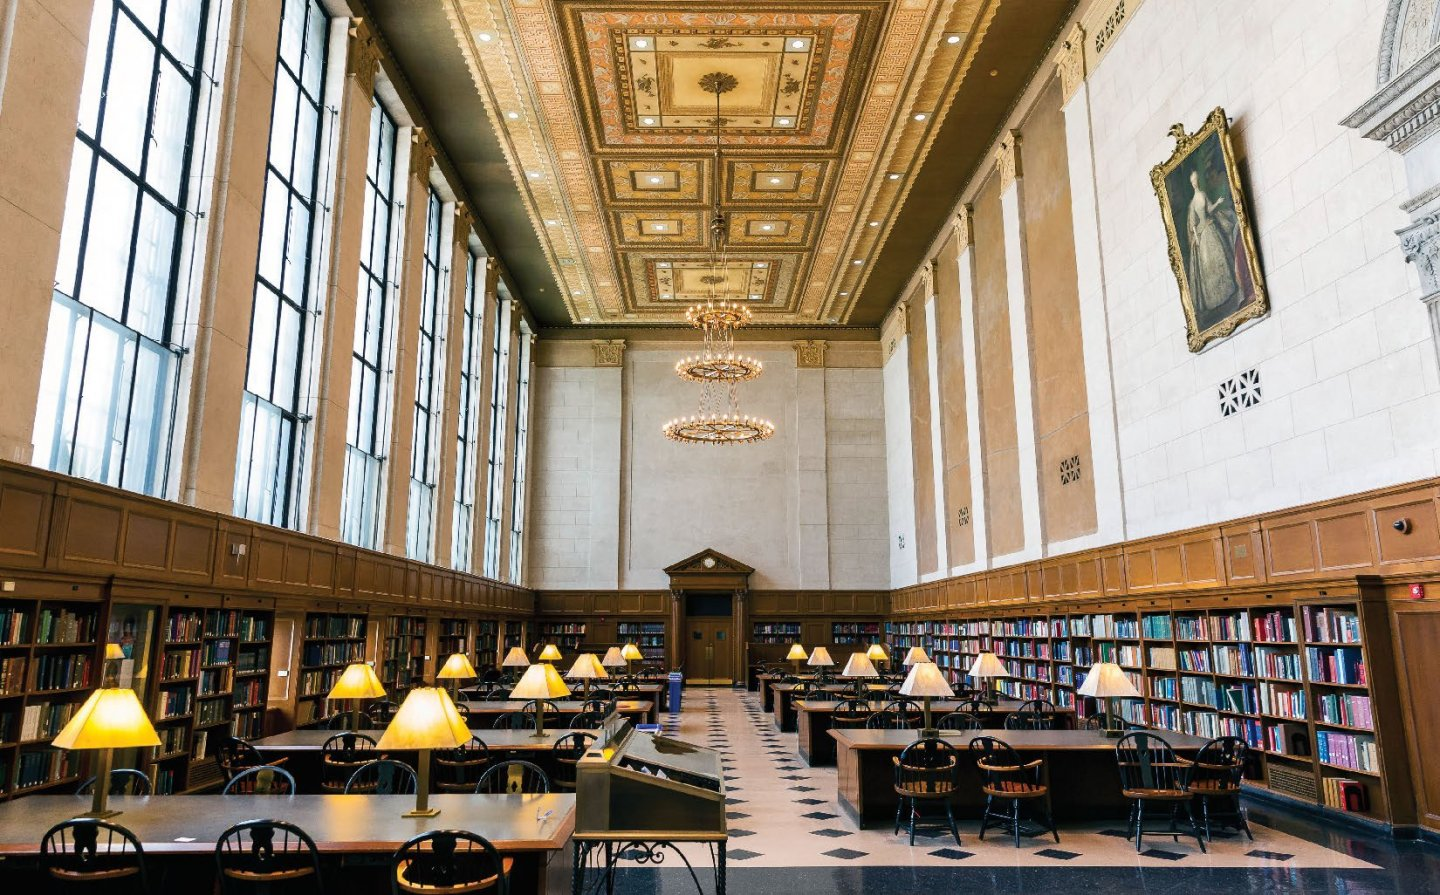 Photograph of Butler Library reading room